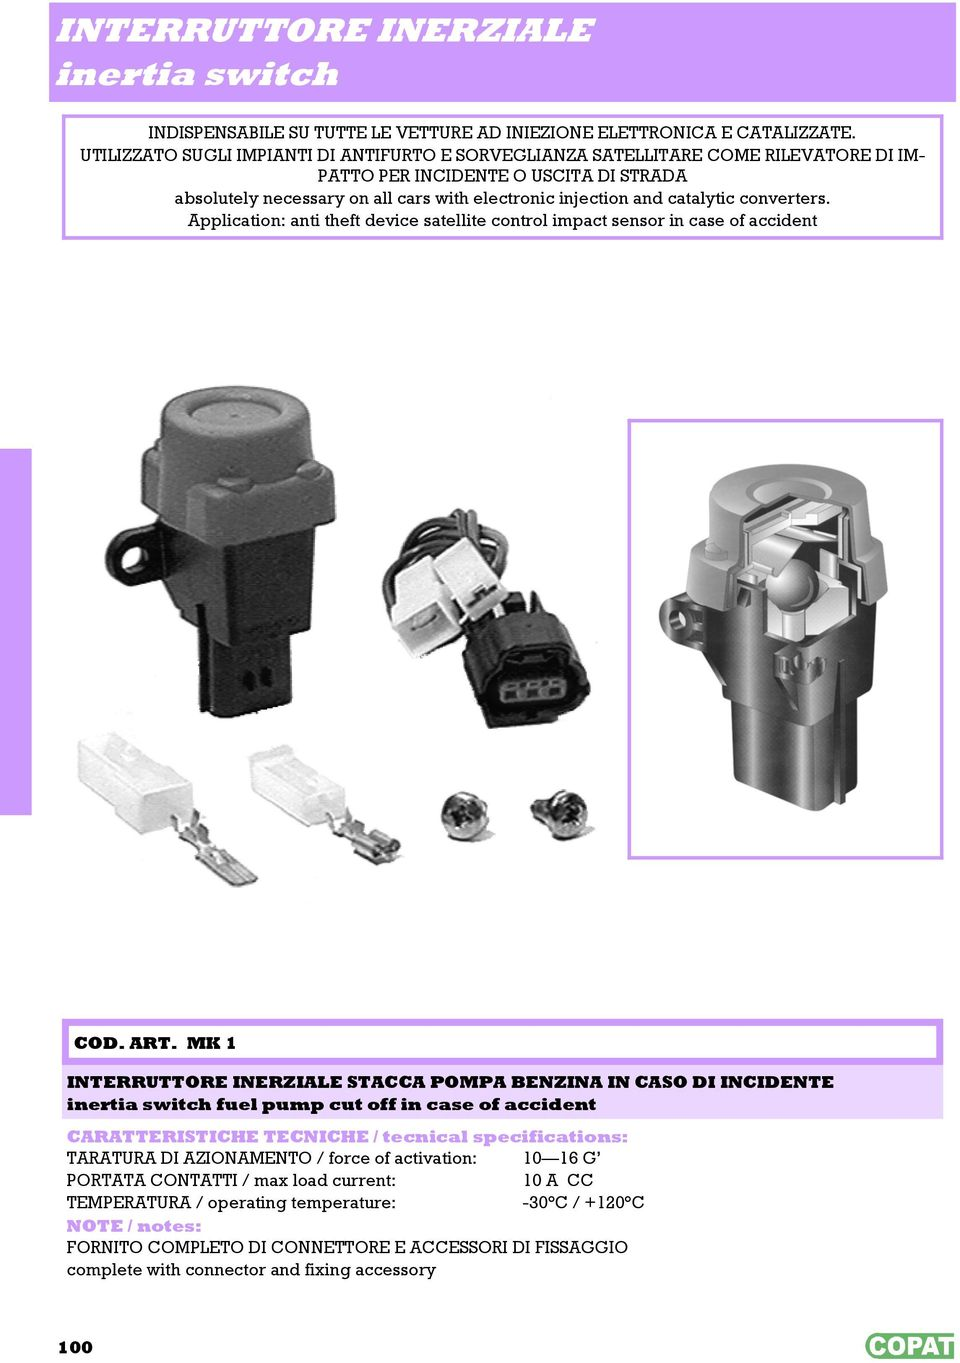 catalytic converters. Application: anti theft device satellite control impact sensor in case of accident COD. ART.